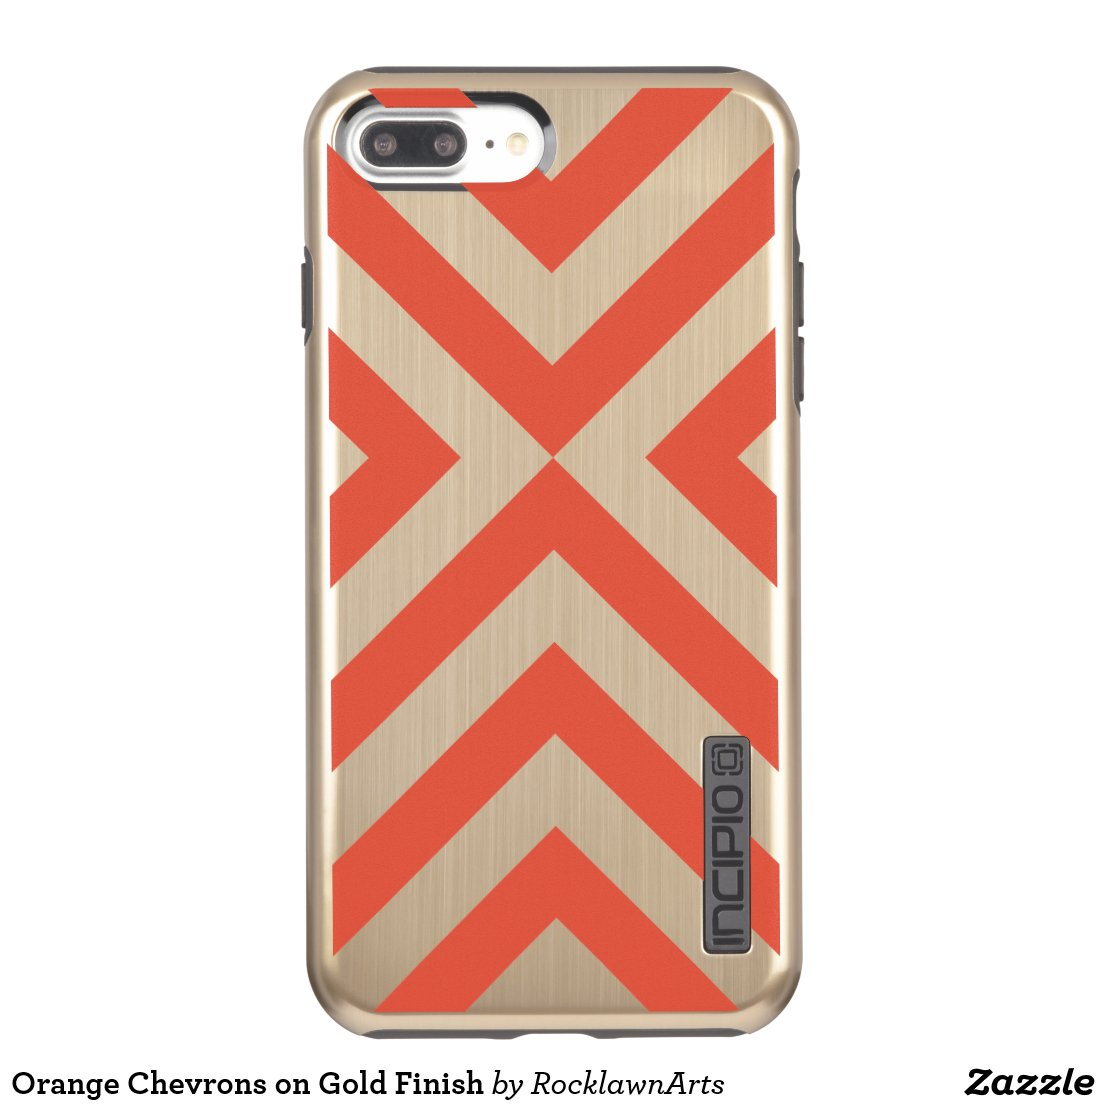 Orange Chevrons on Gold Finish Incipio DualPro Shine iPhone 7 Plus Case